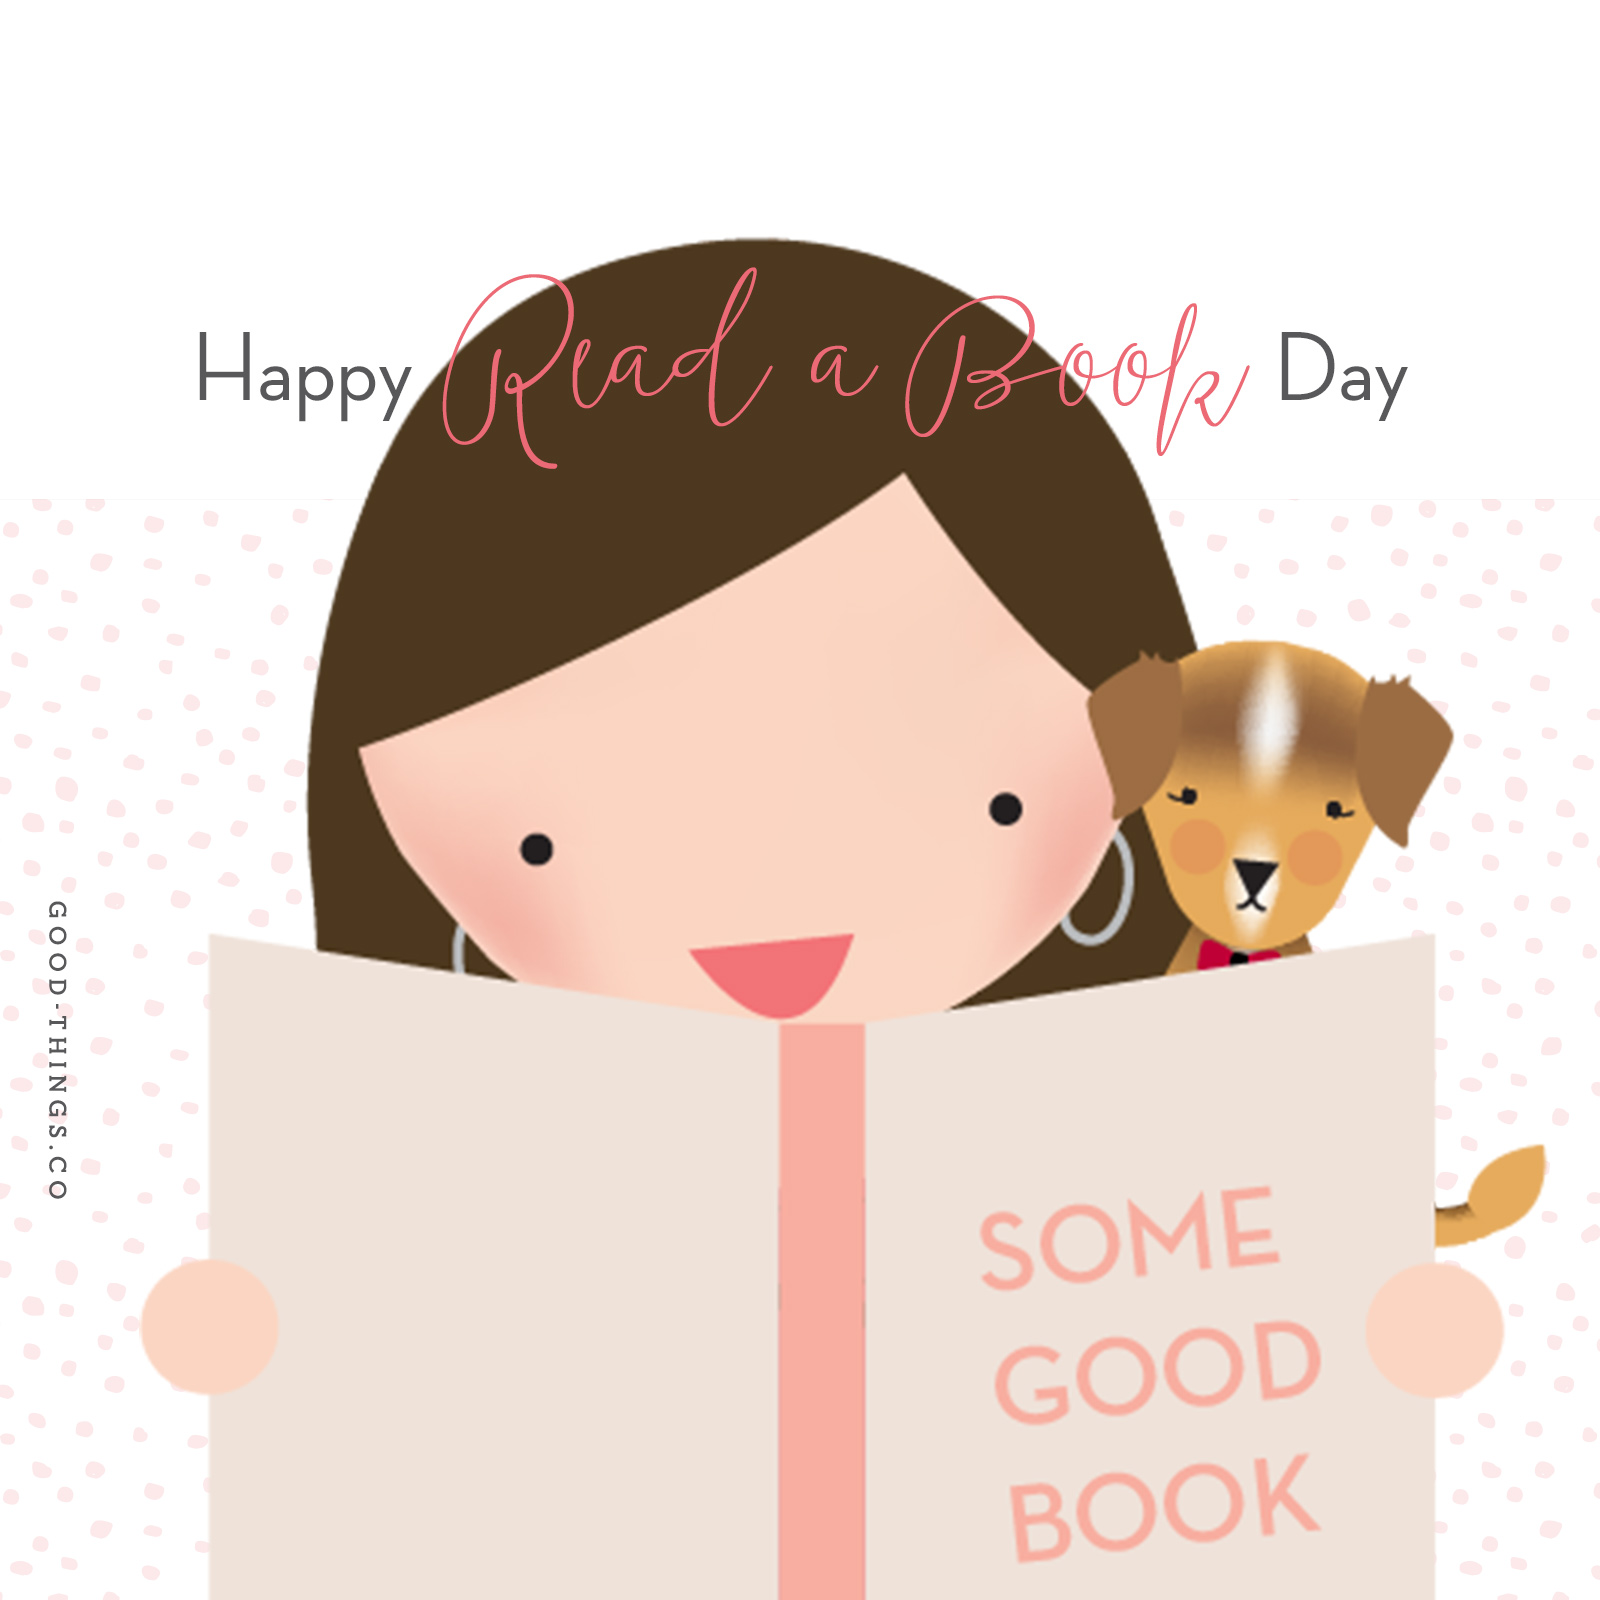 Happy Read a Book Day